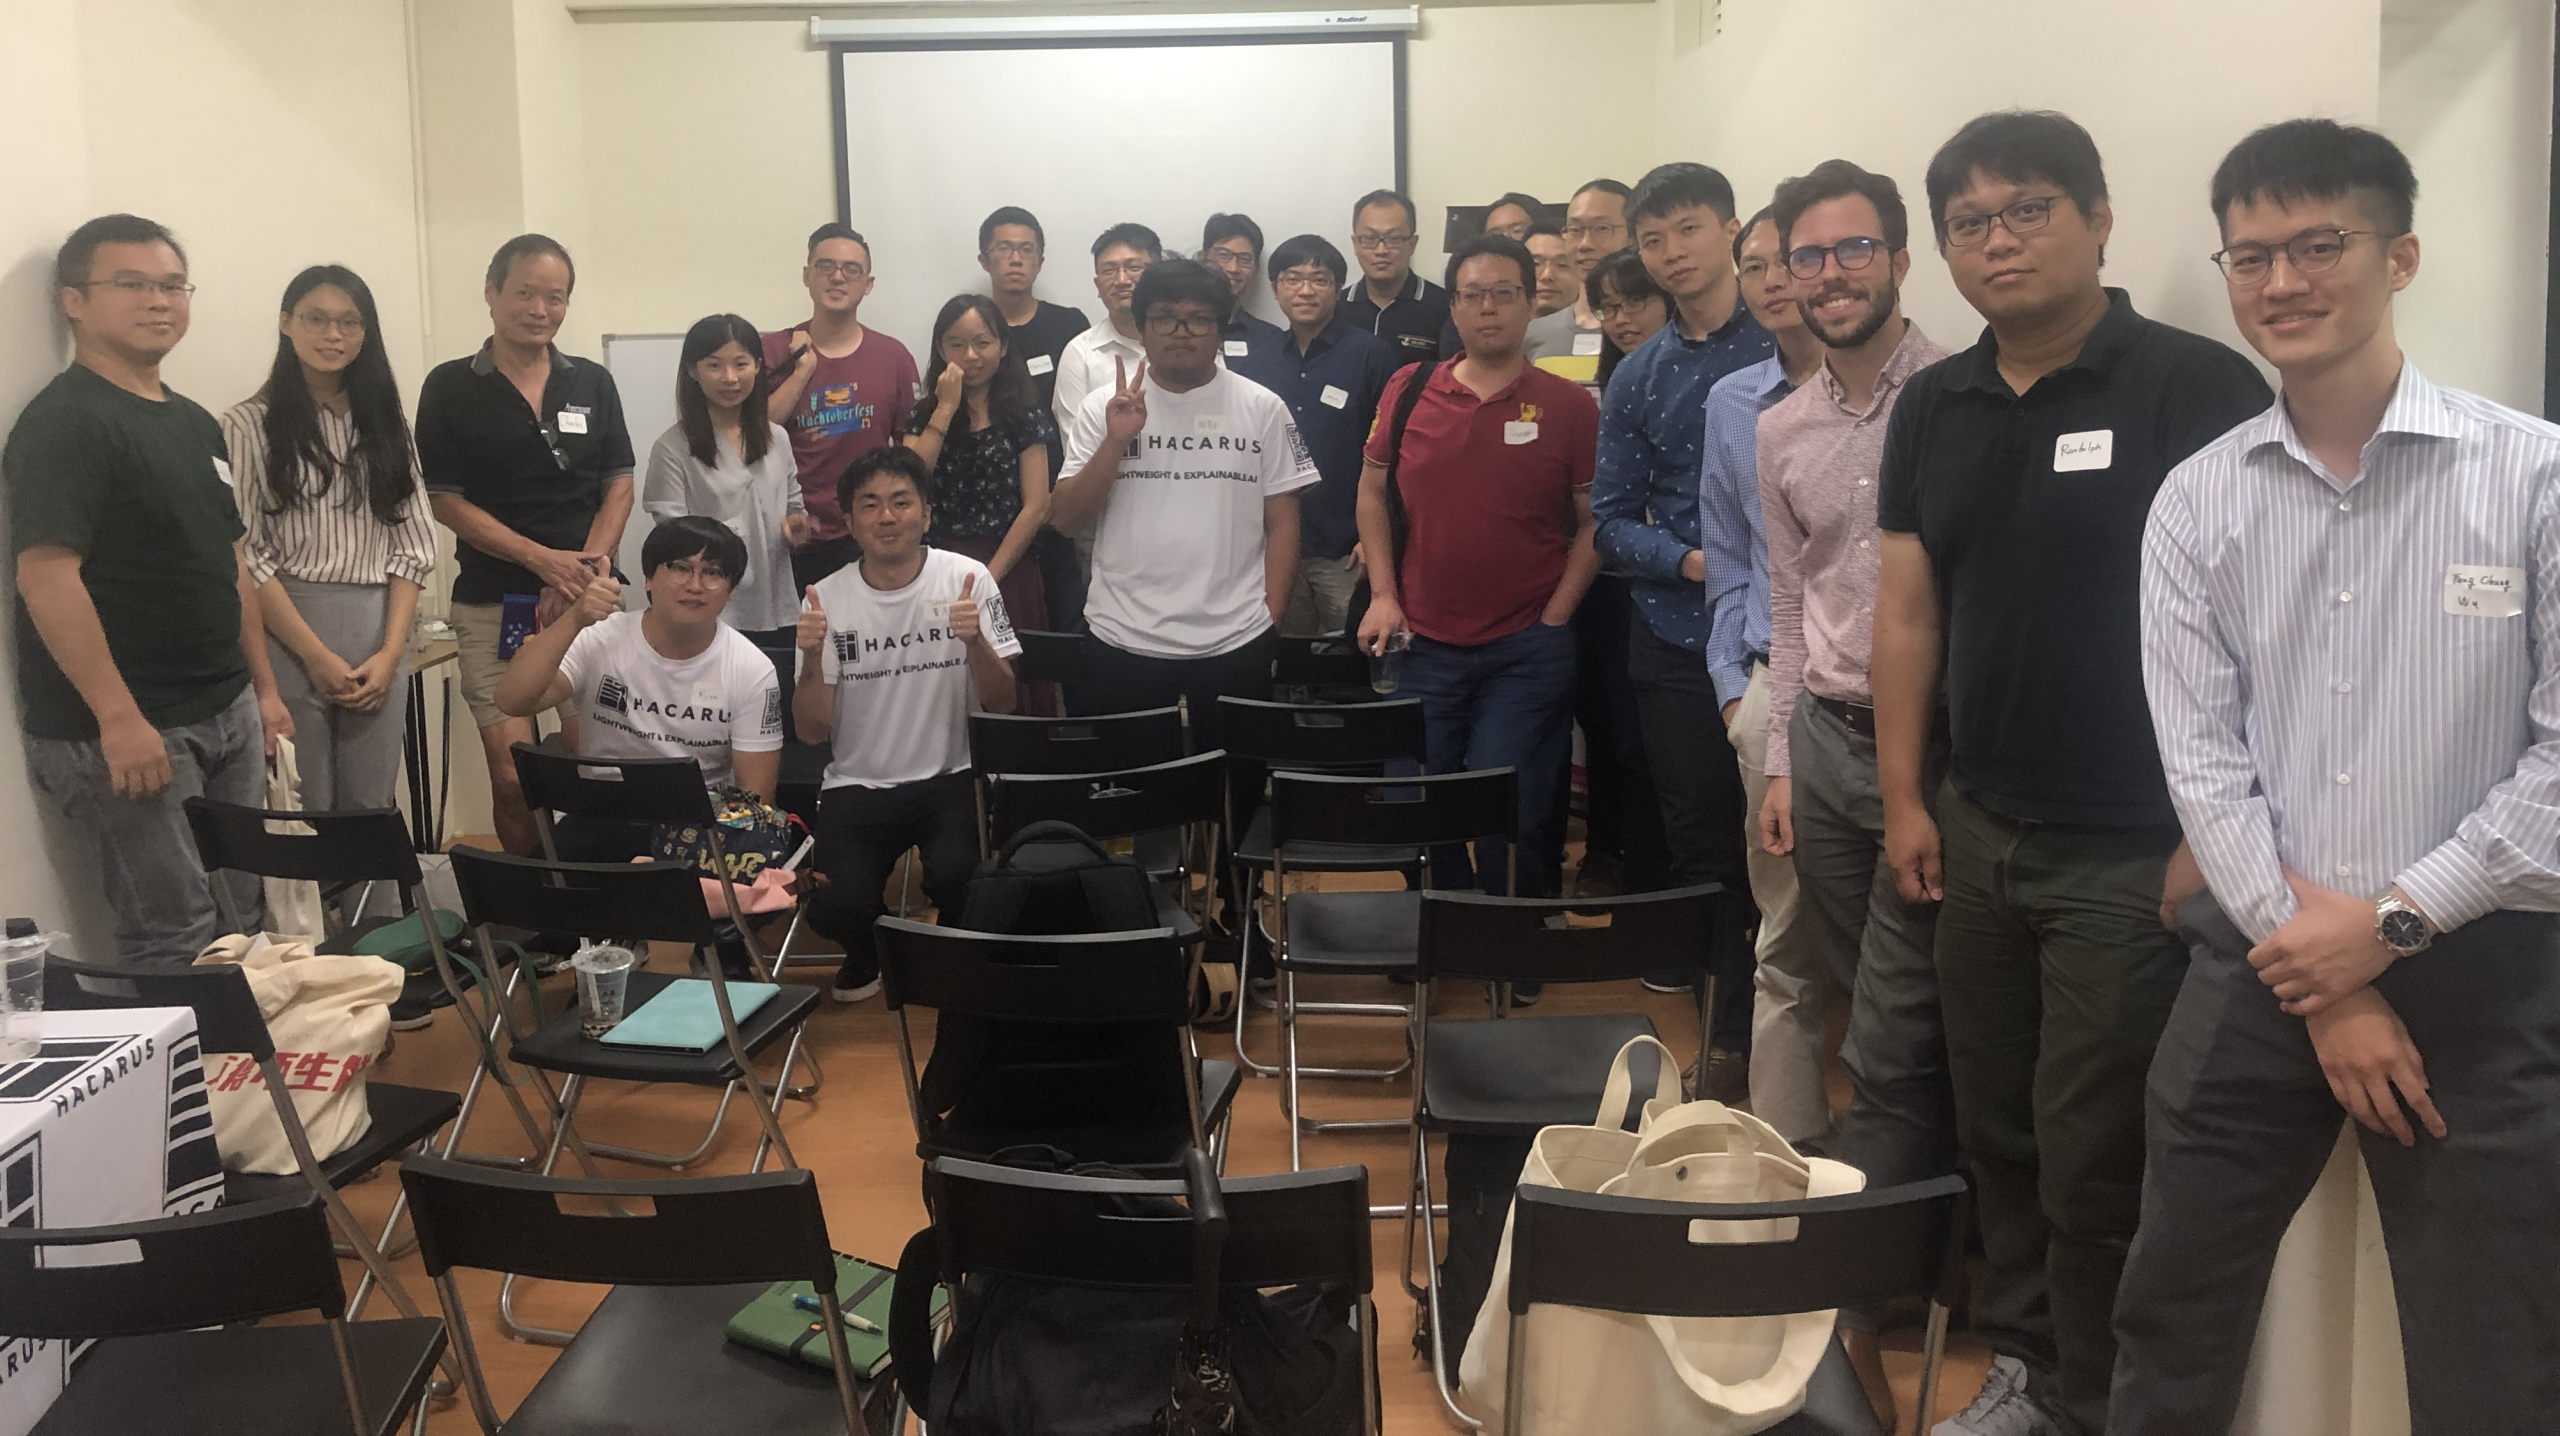 Reflections From Hacarus Tech Meet-Up In Taiwan